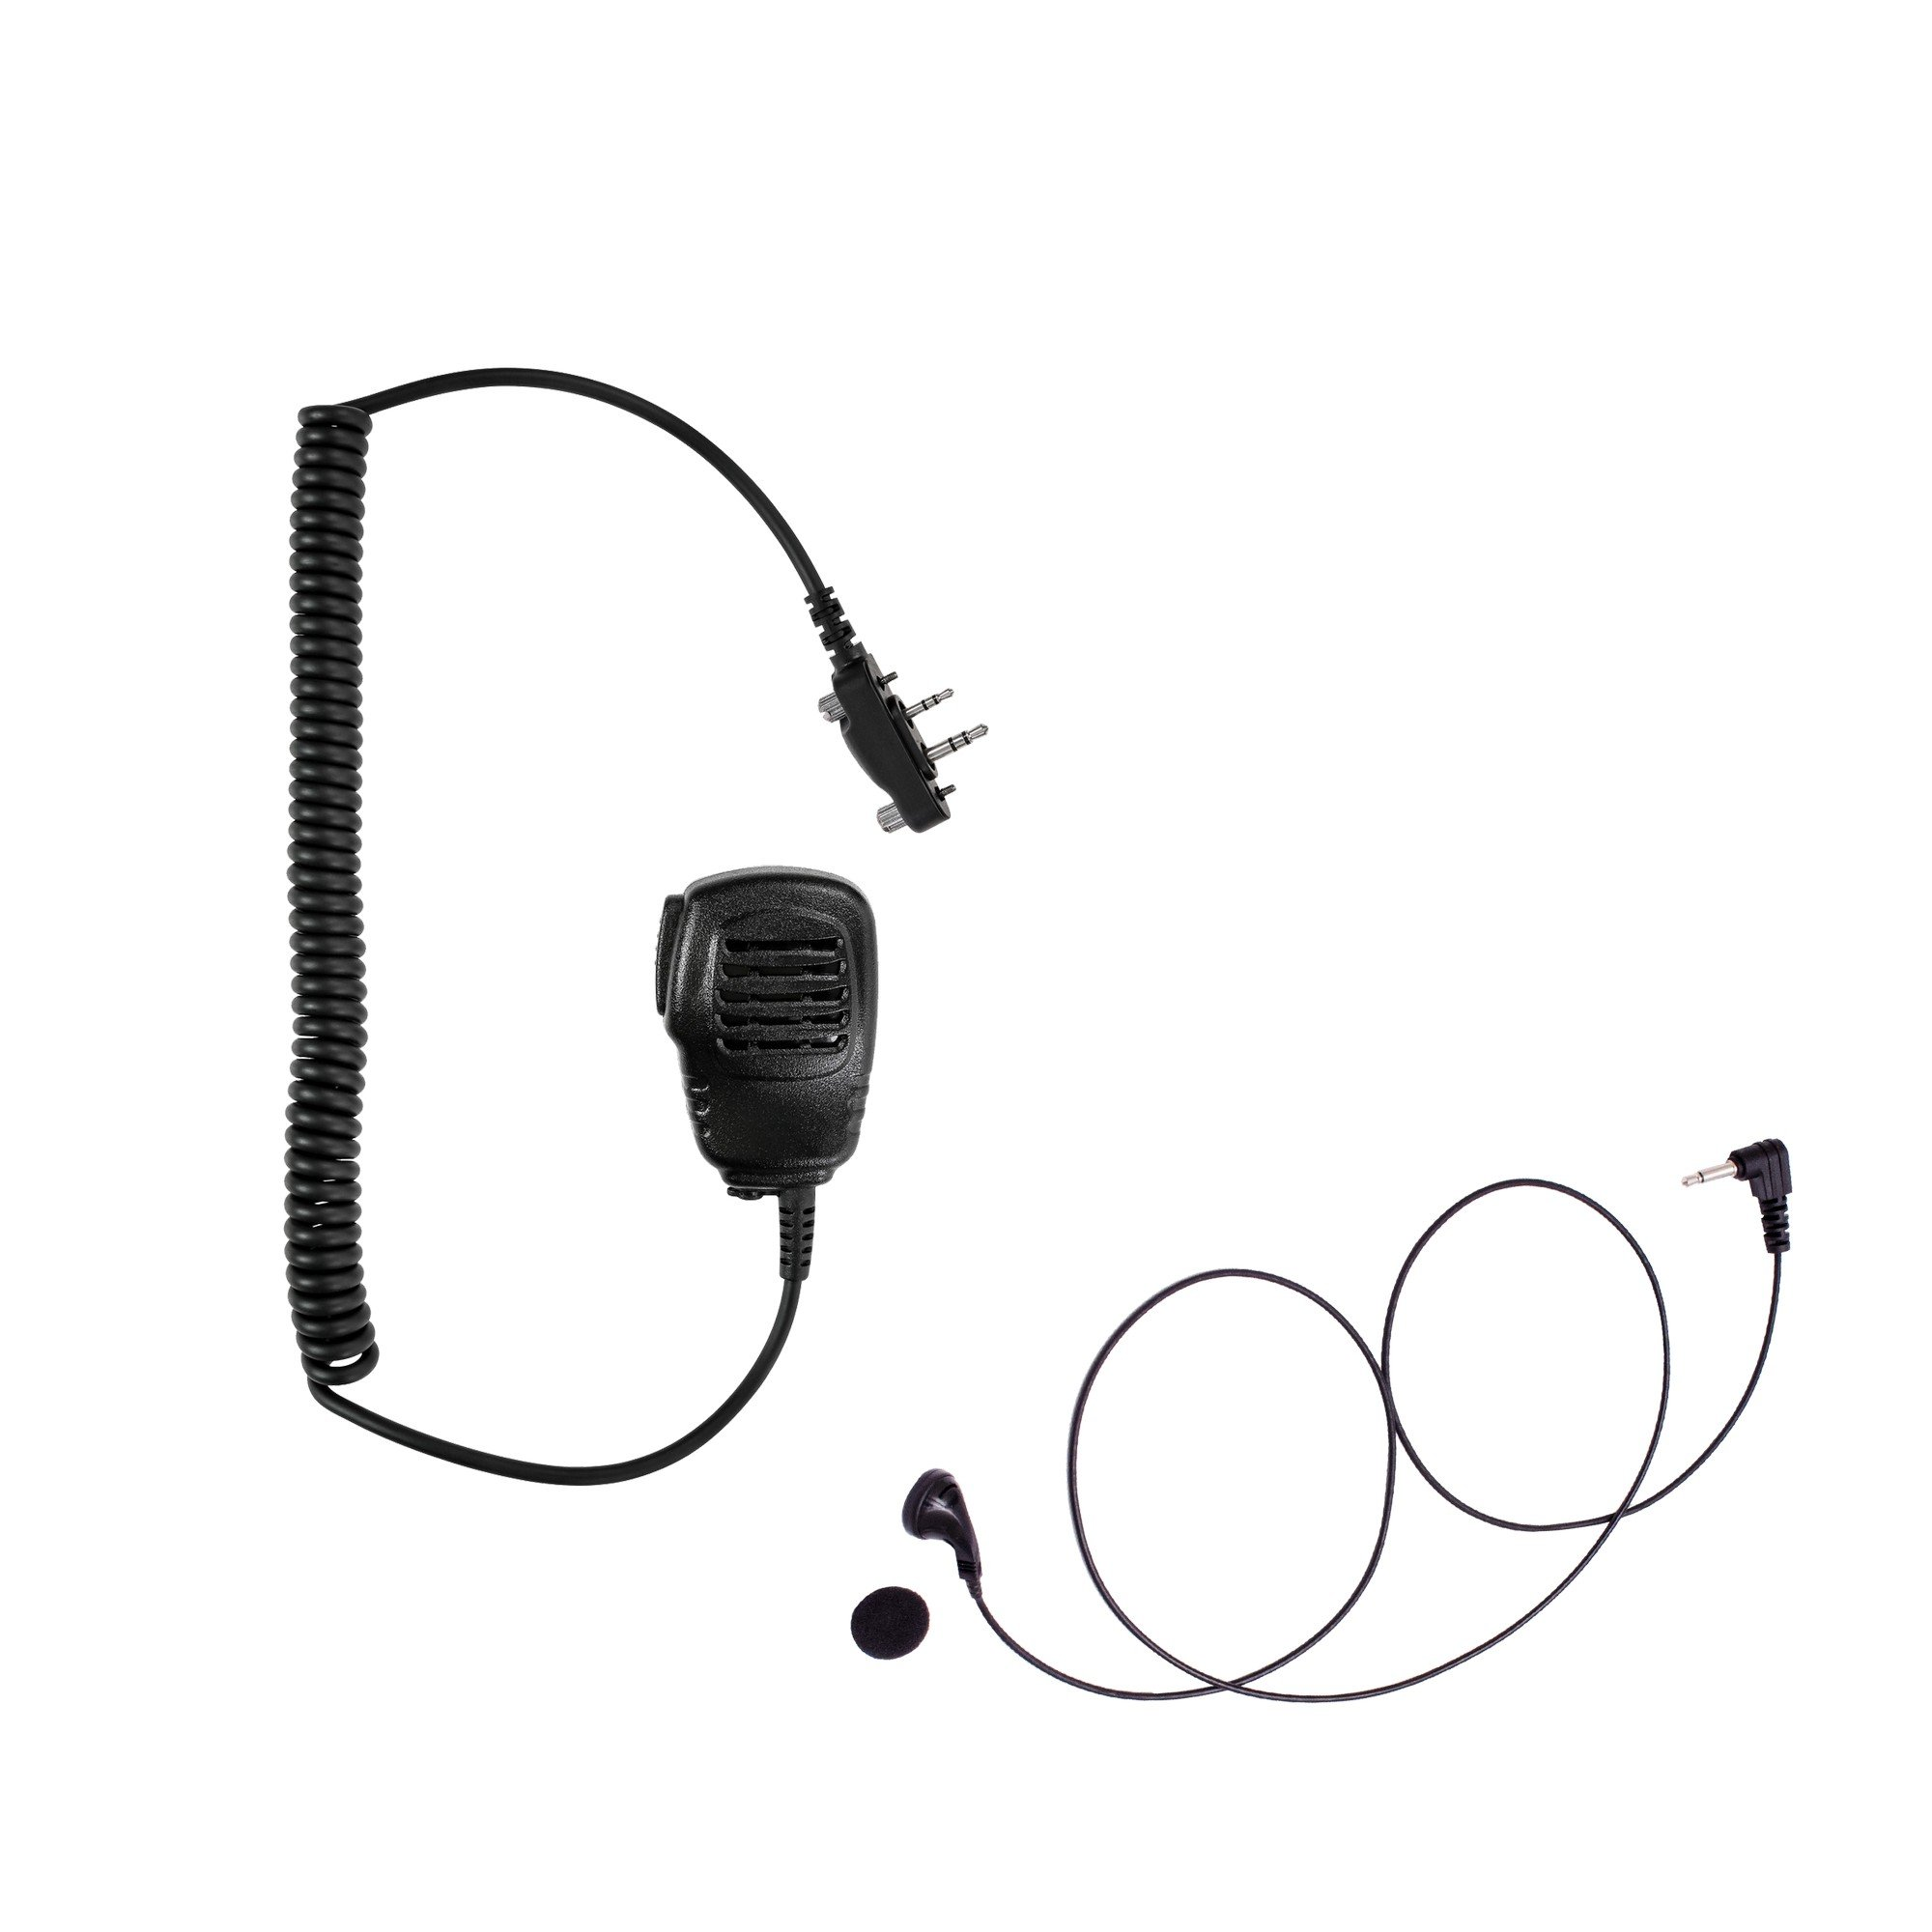 Maxtop APM100ARP01-I2 Light Duty Shoulder Speaker Microphone + Earbud Listen Only Earpiece for ICOM